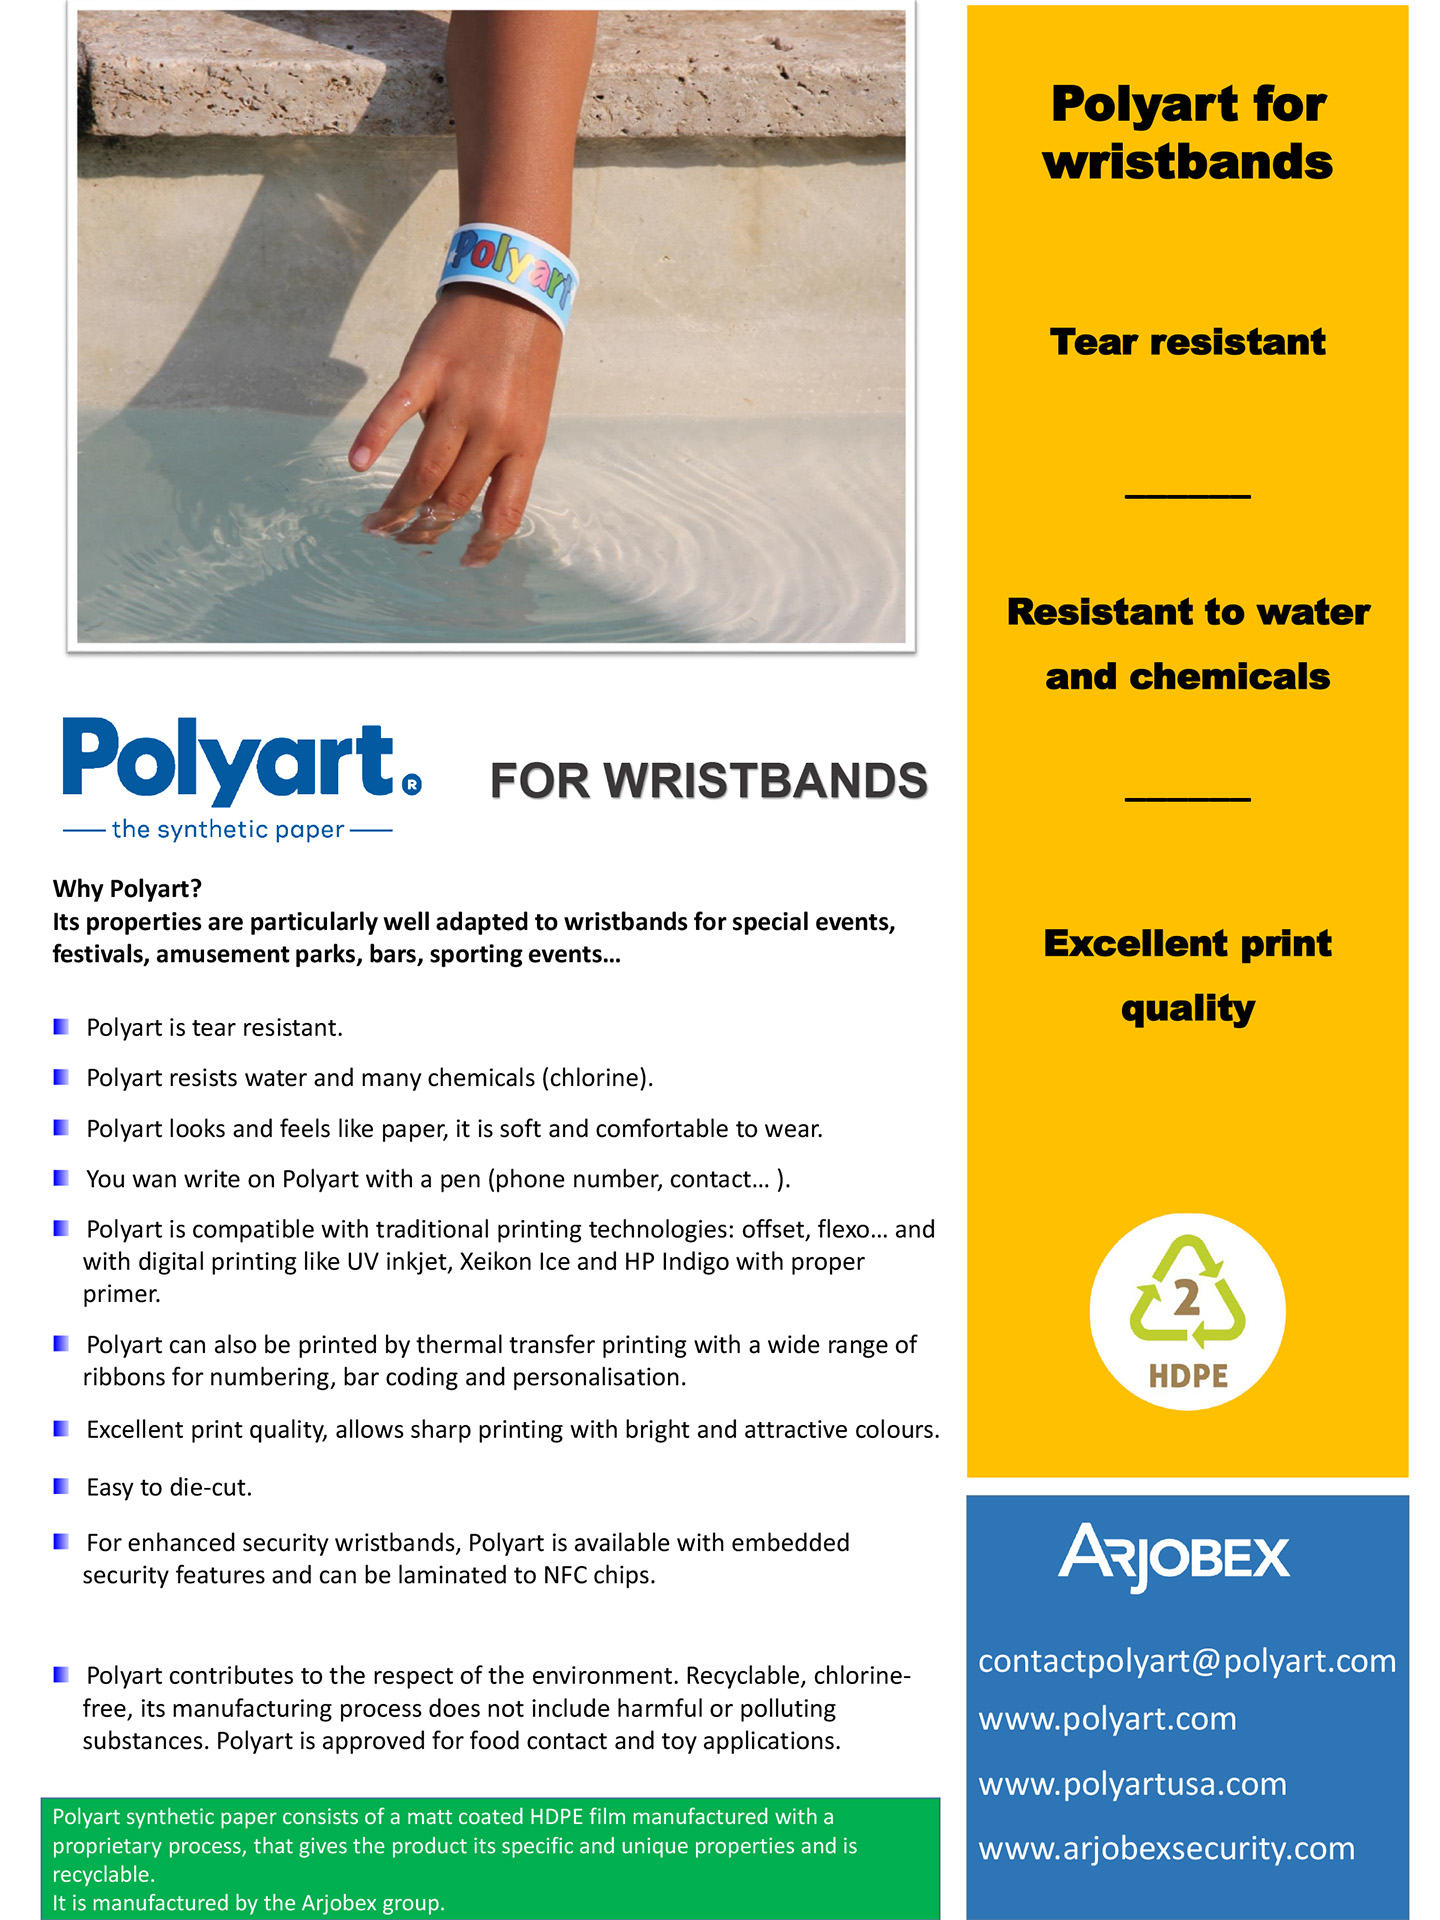 Polyart - for wristbands